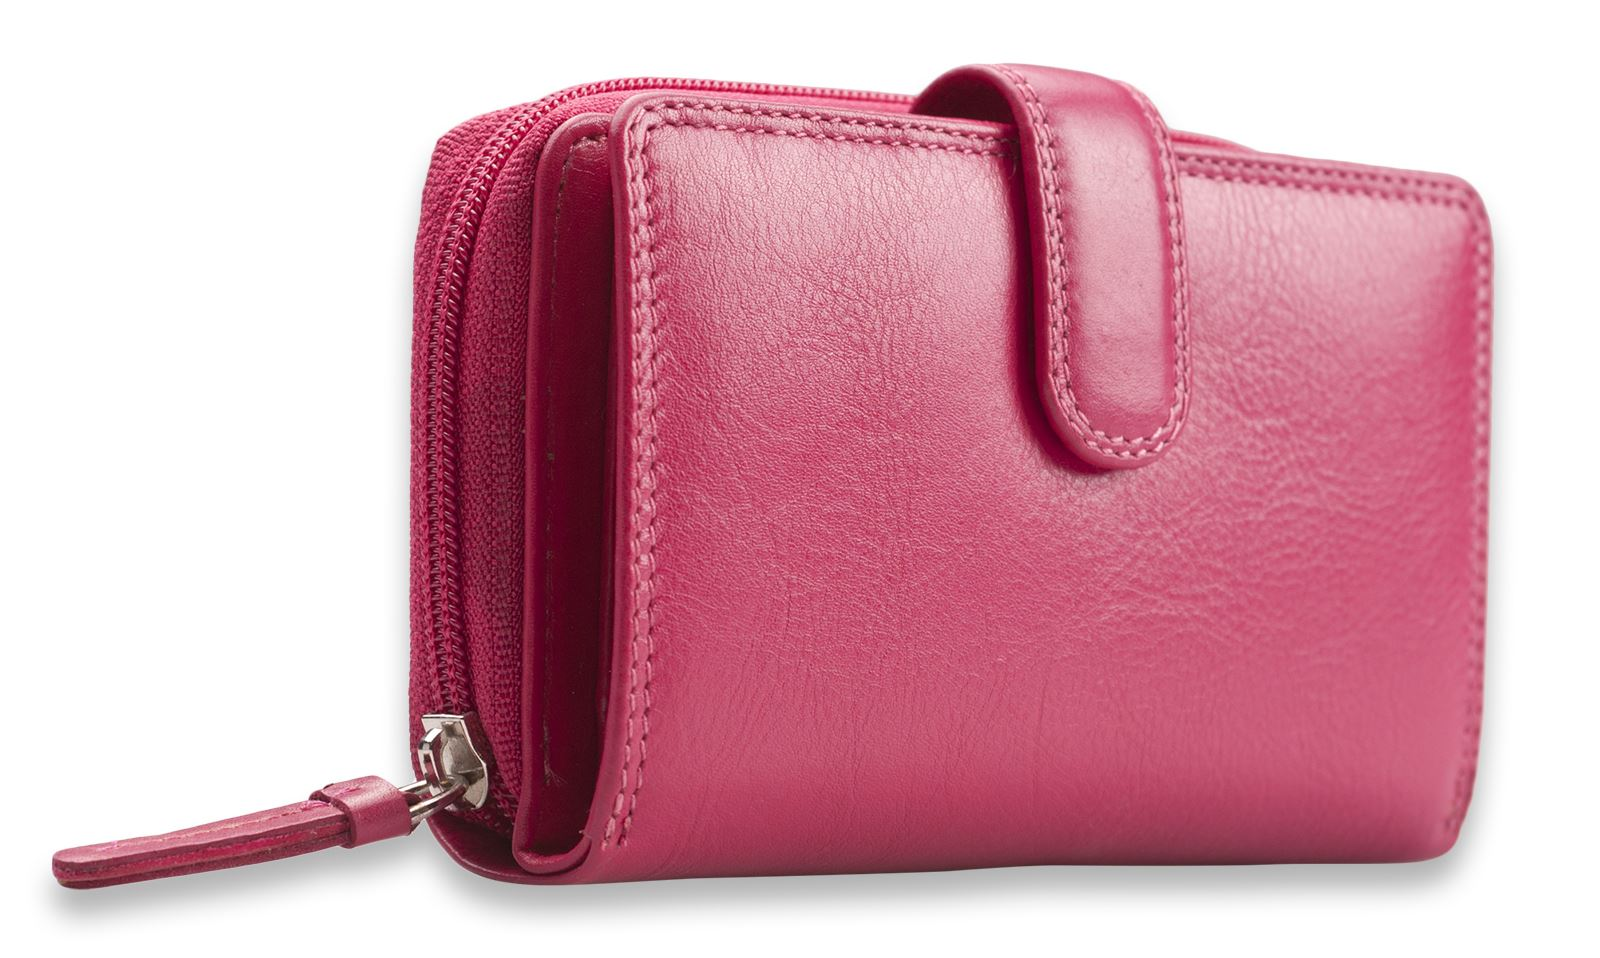 Find great deals on eBay for soft leather wallet. Shop with confidence.